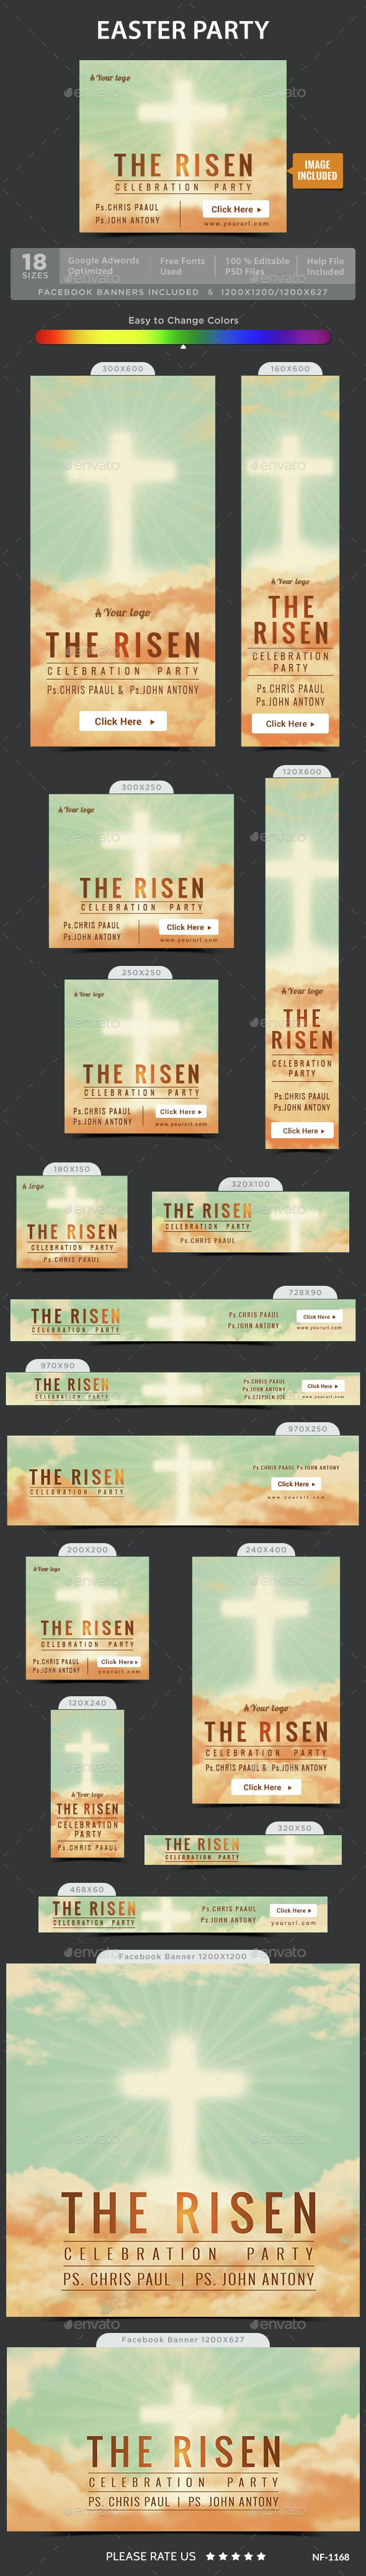 Easter Party Banners - Banners & Ads Web Elements